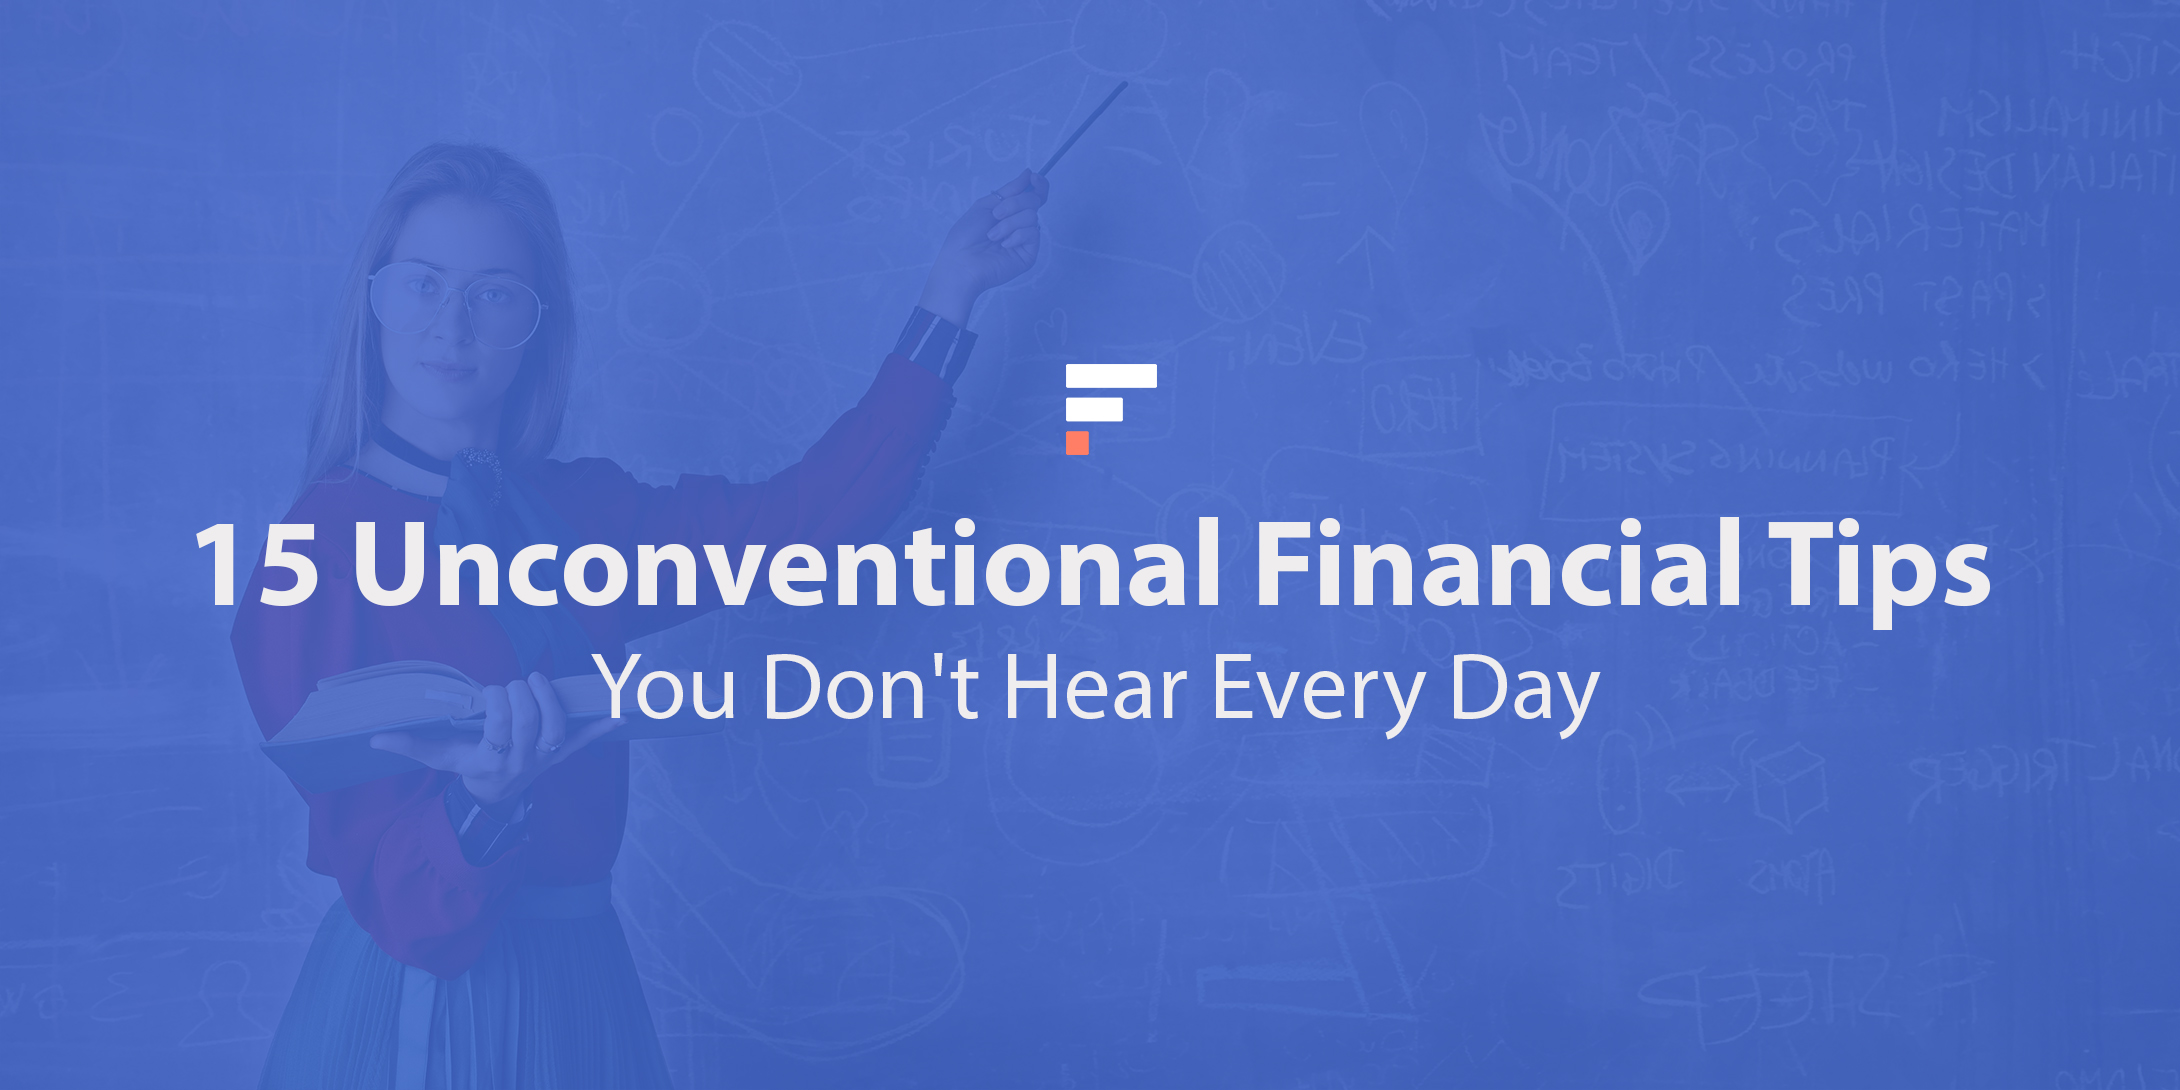 Unconventional financial tips